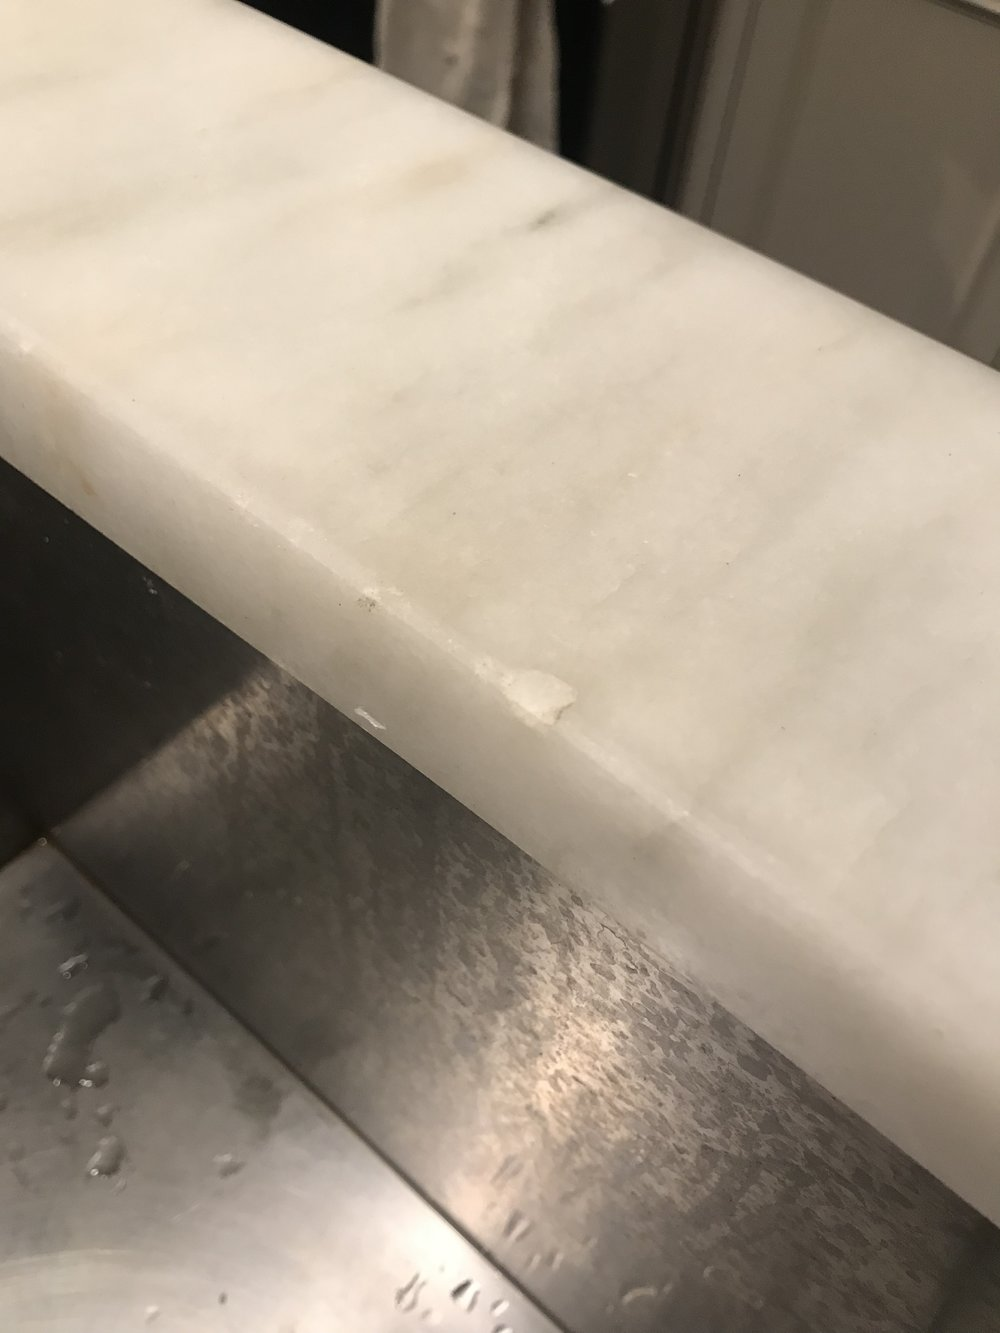 Anyone Out There Have Honed Marble Countertops And NOT Feel The Same Way I  Do? If Your Experience Has Been Different, What Did You Not Like About ...